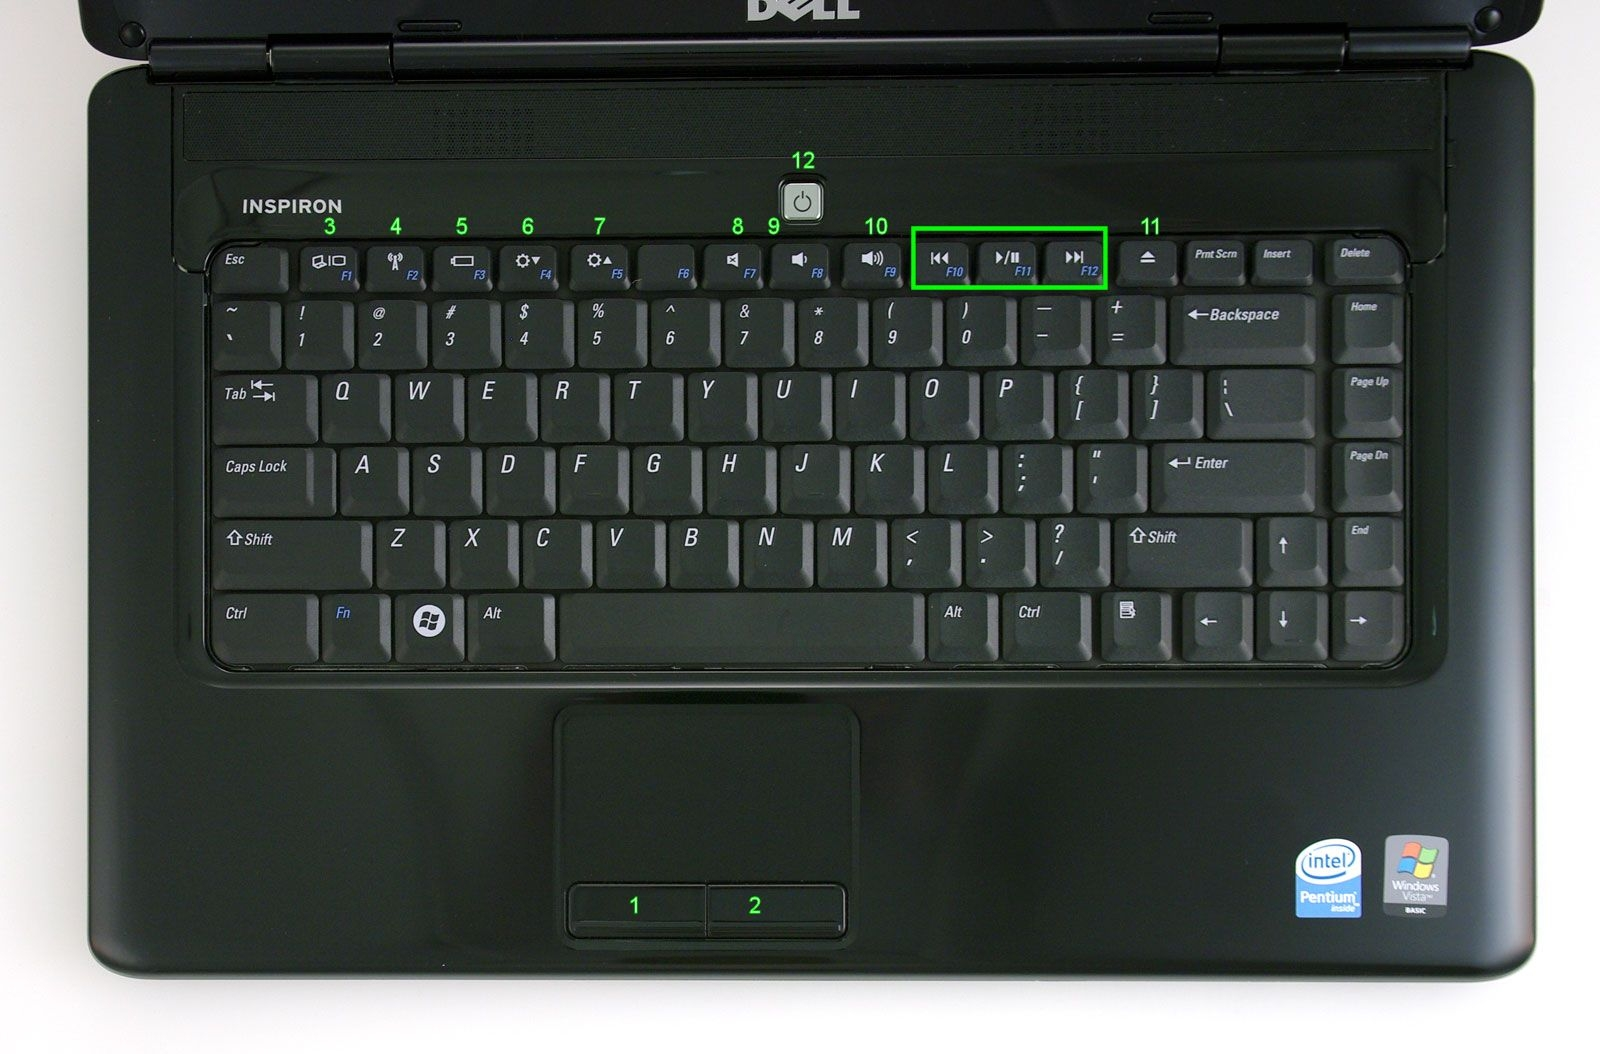 Dell computer keyboard clipart image freeuse library Dell inspiron hd clipart - ClipartFox image freeuse library